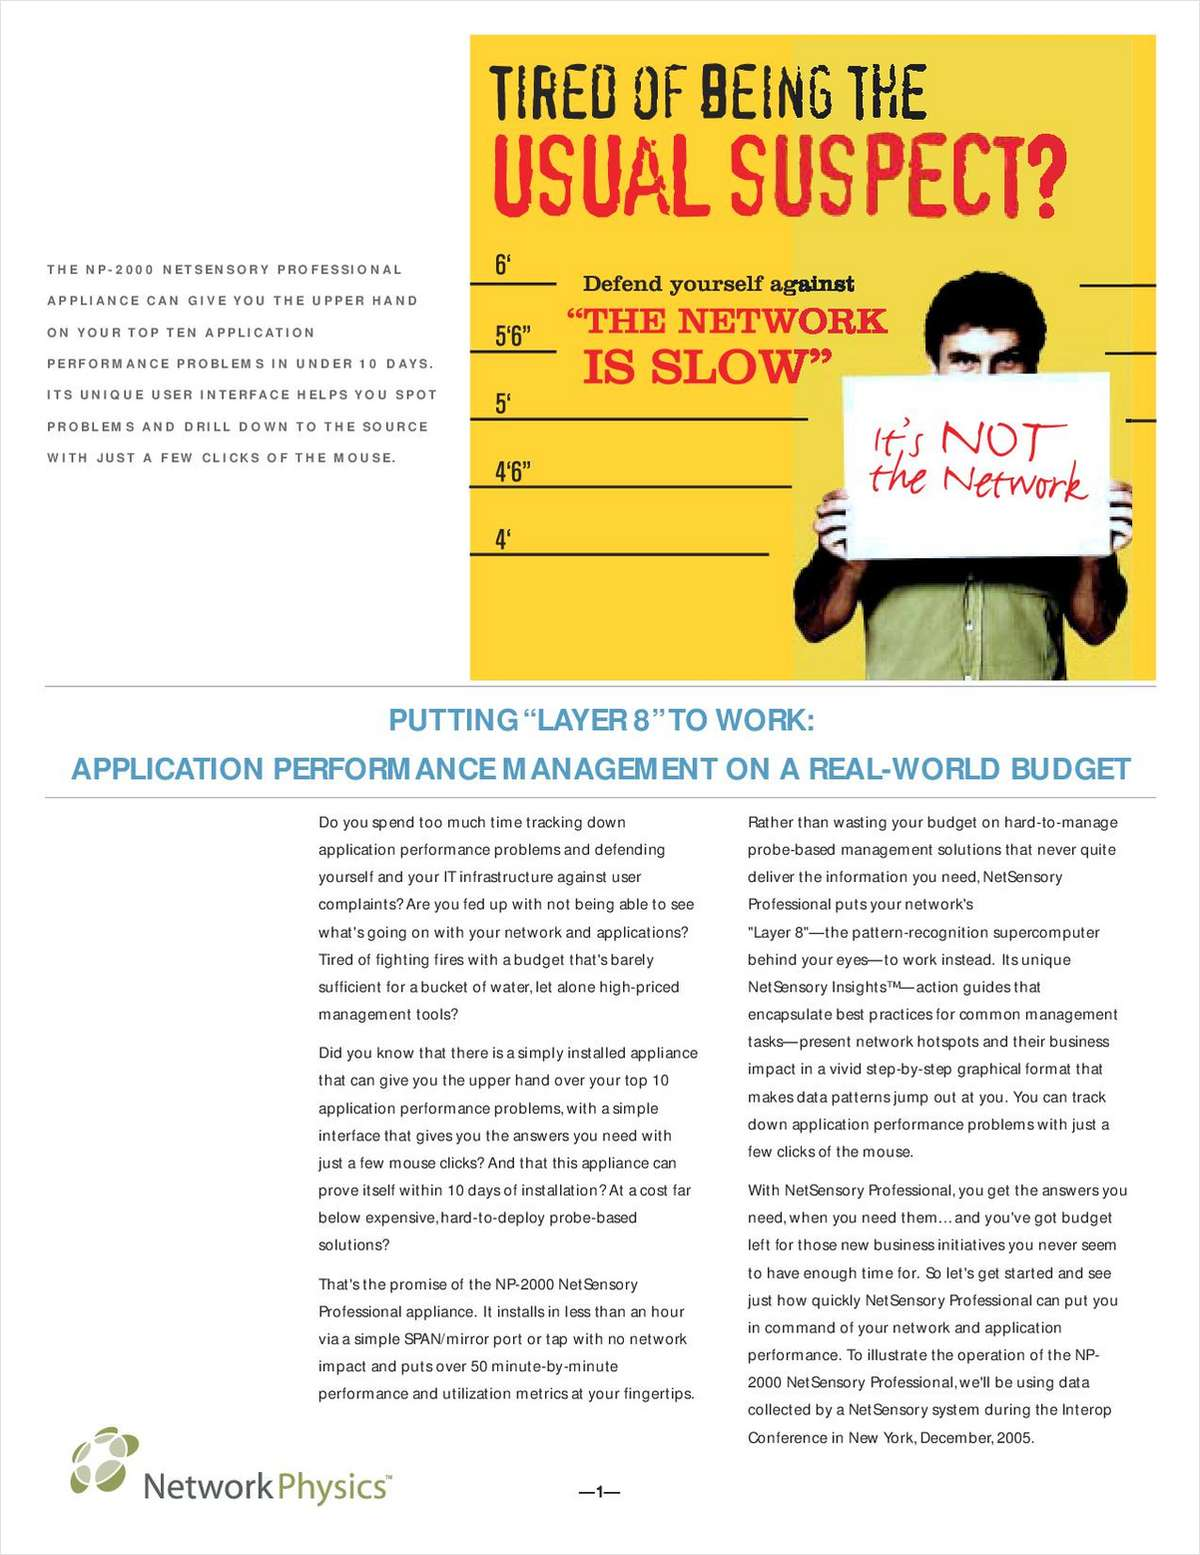 """Putting """"Layer 8"""" to Work: Application Performance Management on a Real-World Budget"""